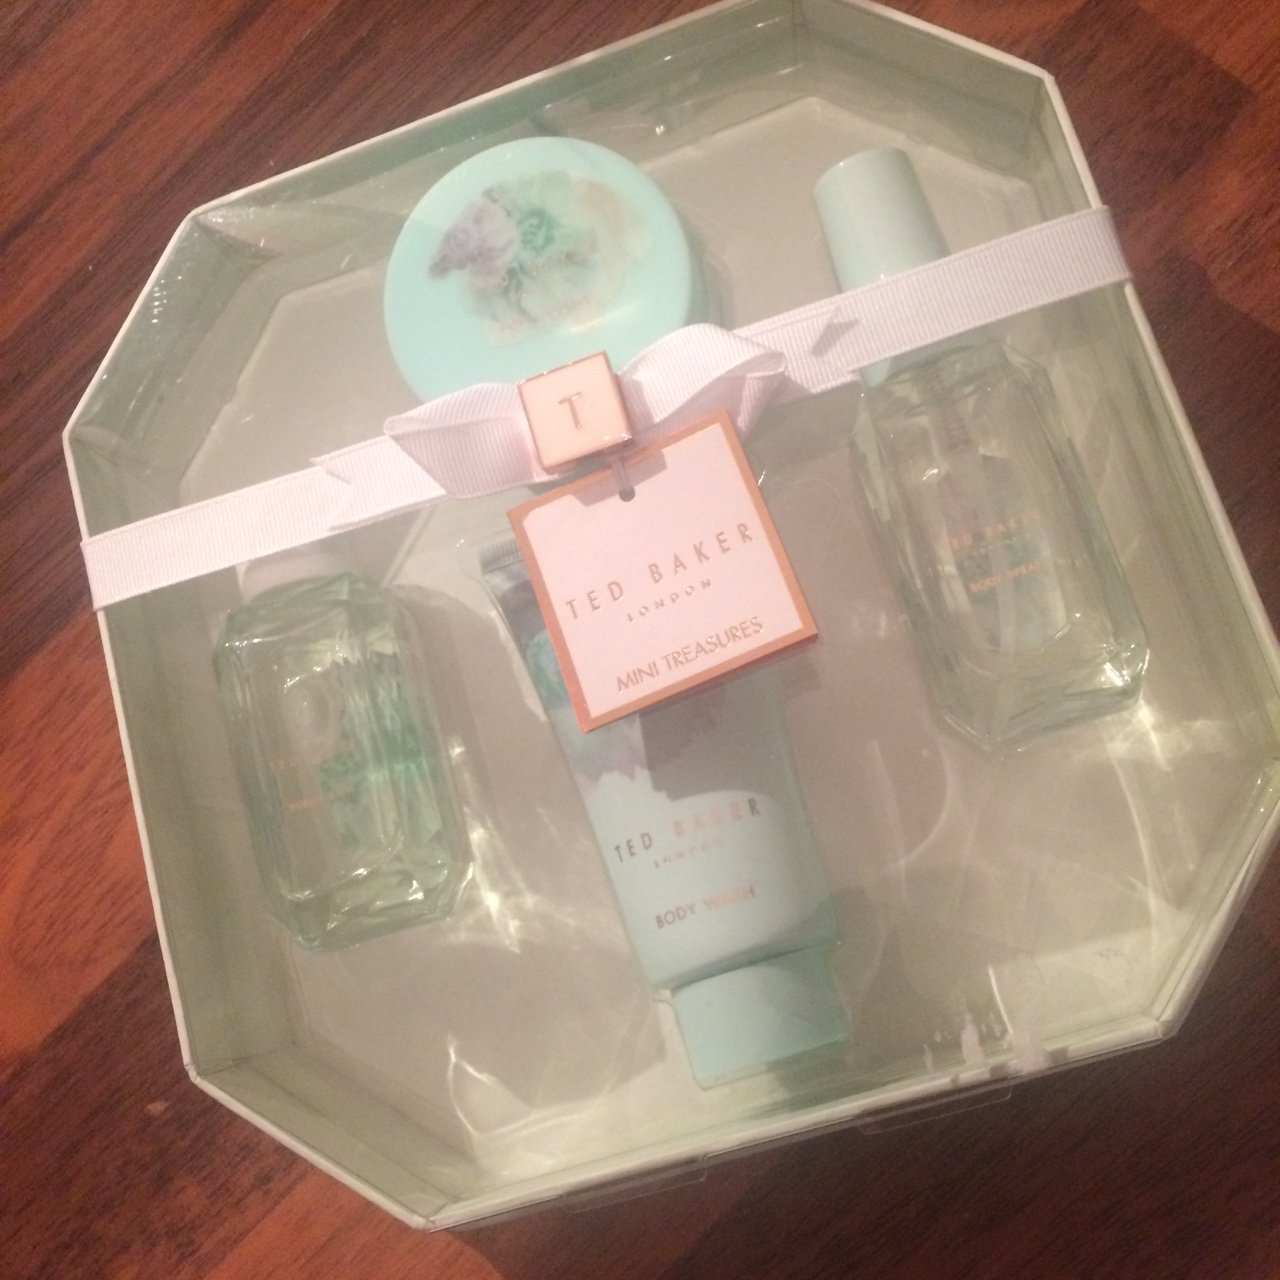 769c007c4 Ted Baker  Mini Treasures  gift set. Brand new